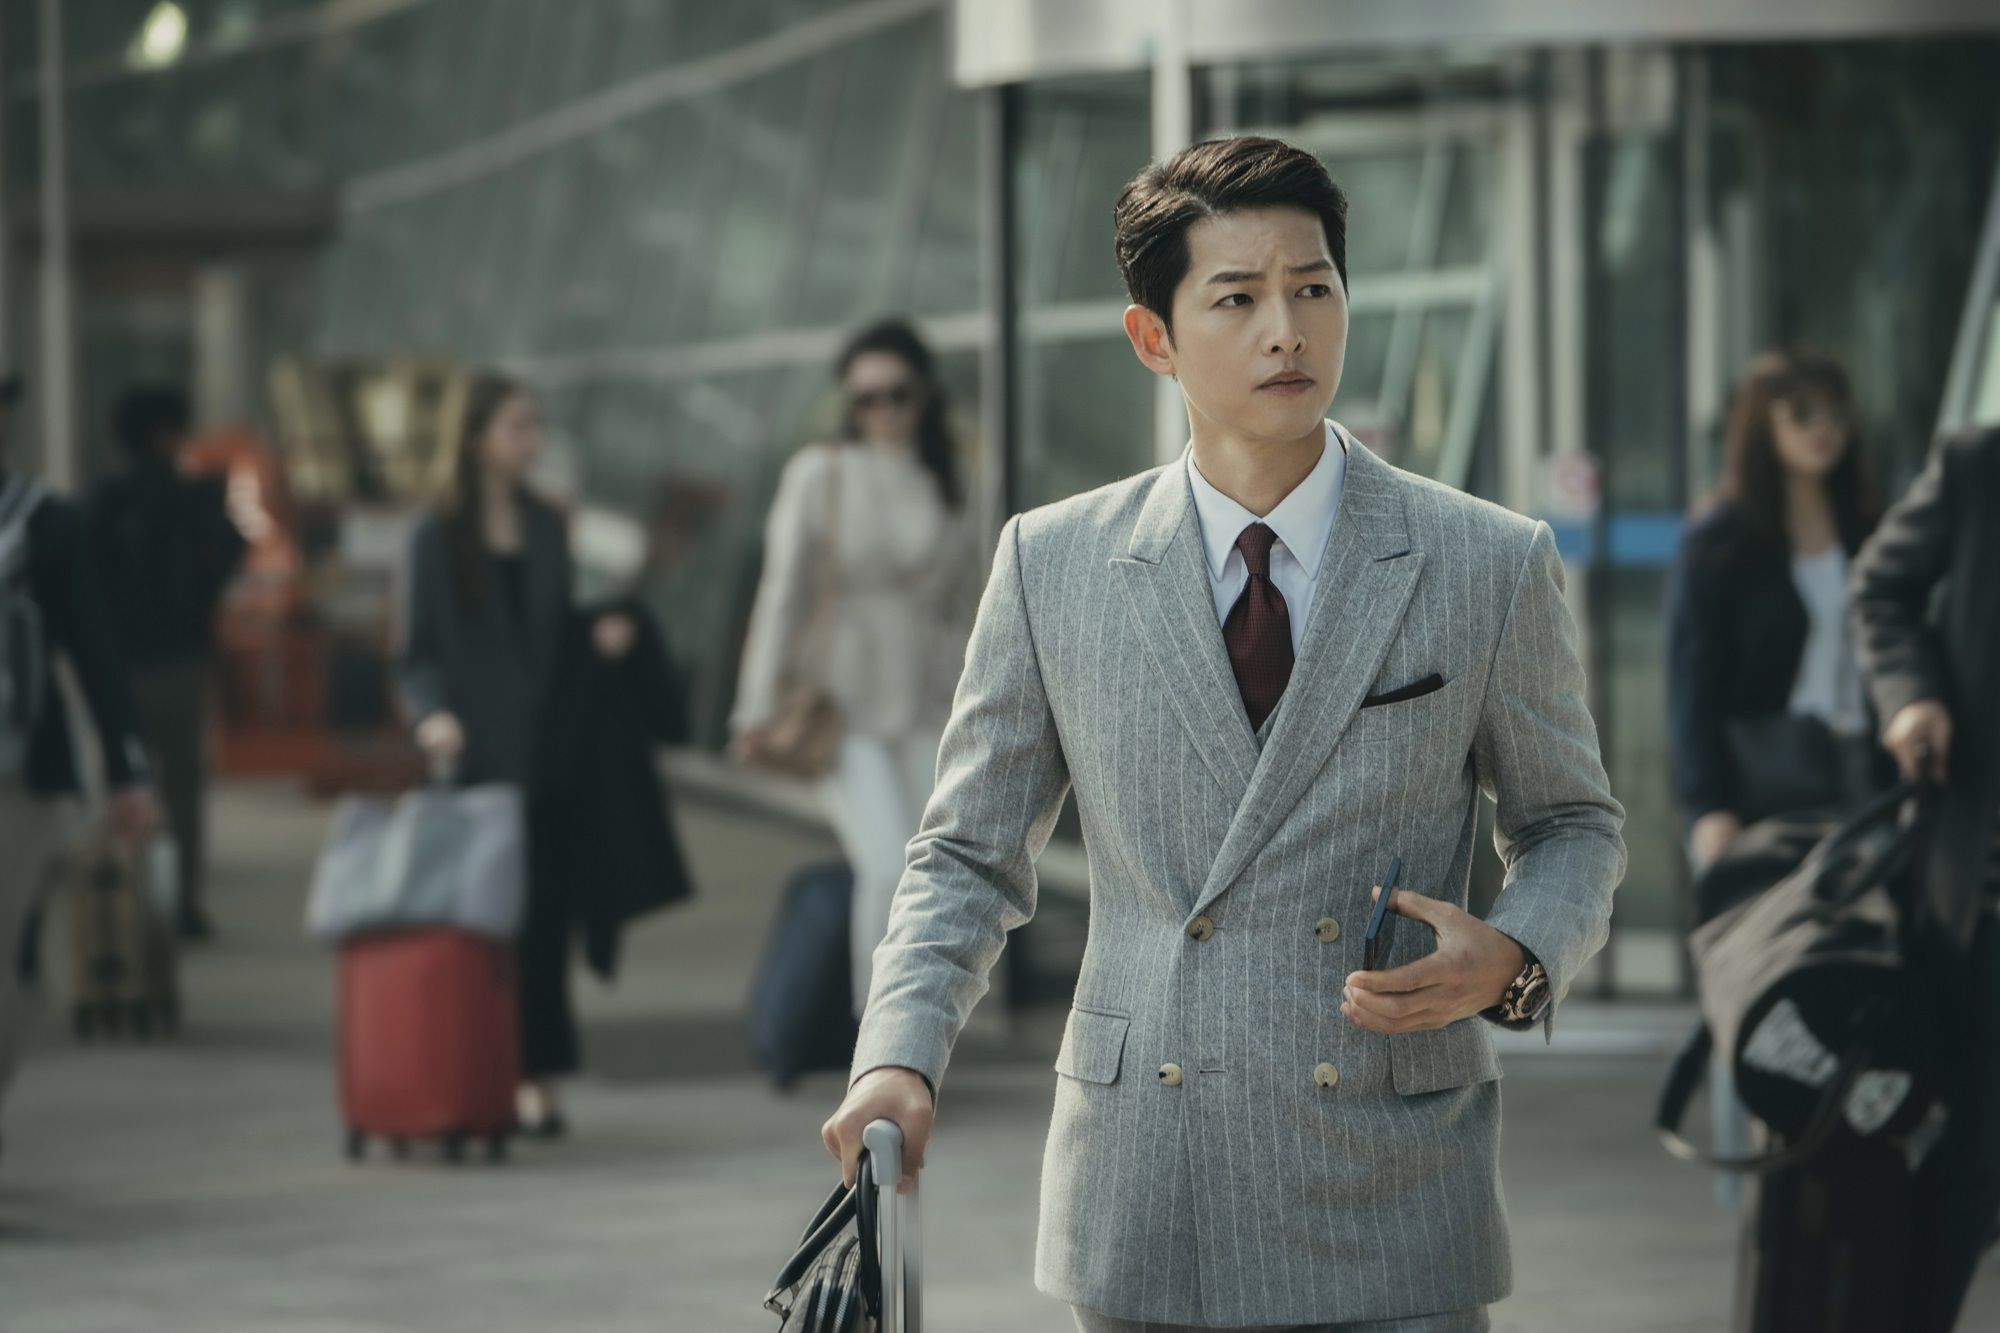 Vincenzo: What Luxury Watches Does Song Joong-Ki Wear in the Hit Korean Drama?